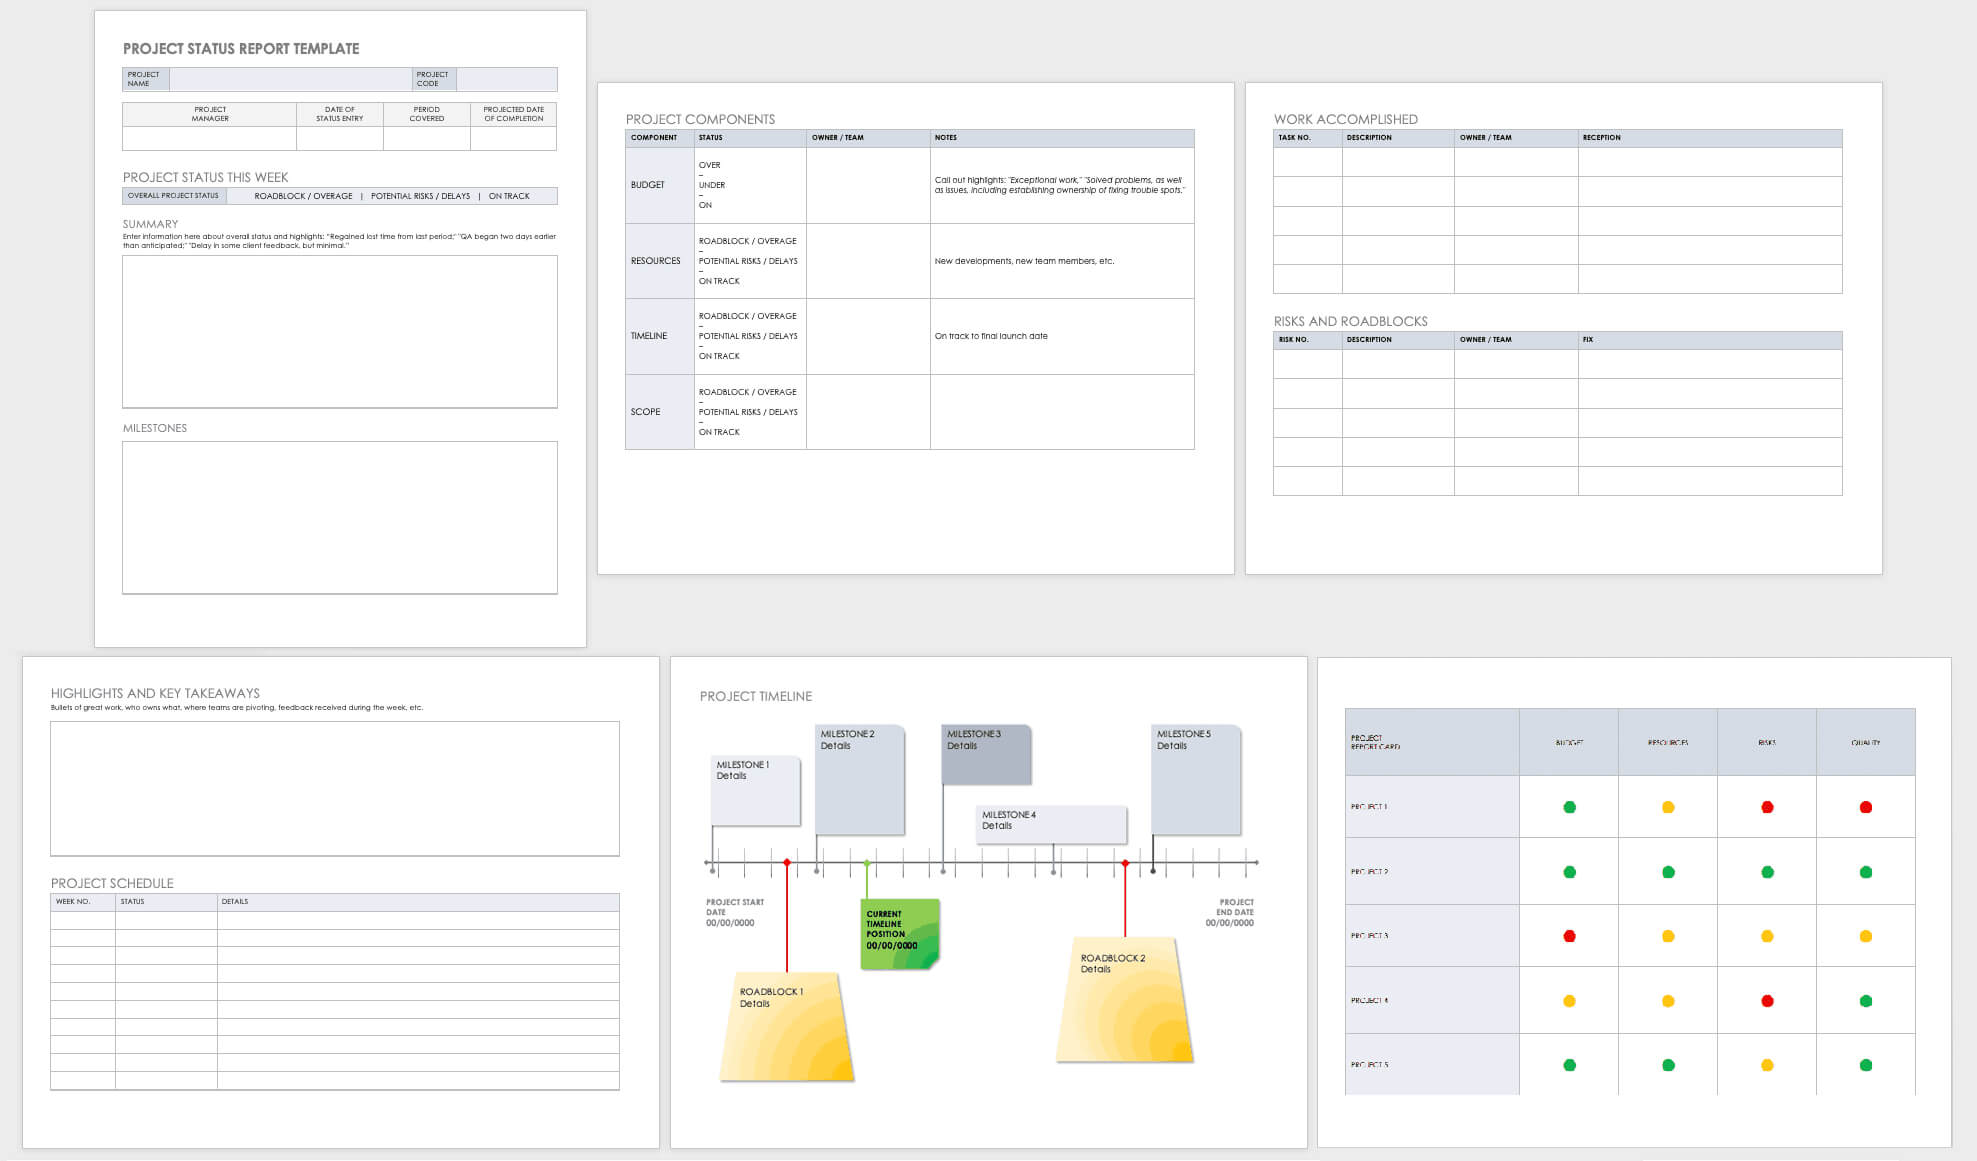 Free Project Report Templates | Smartsheet With Regard To Weekly Status Report Template Excel